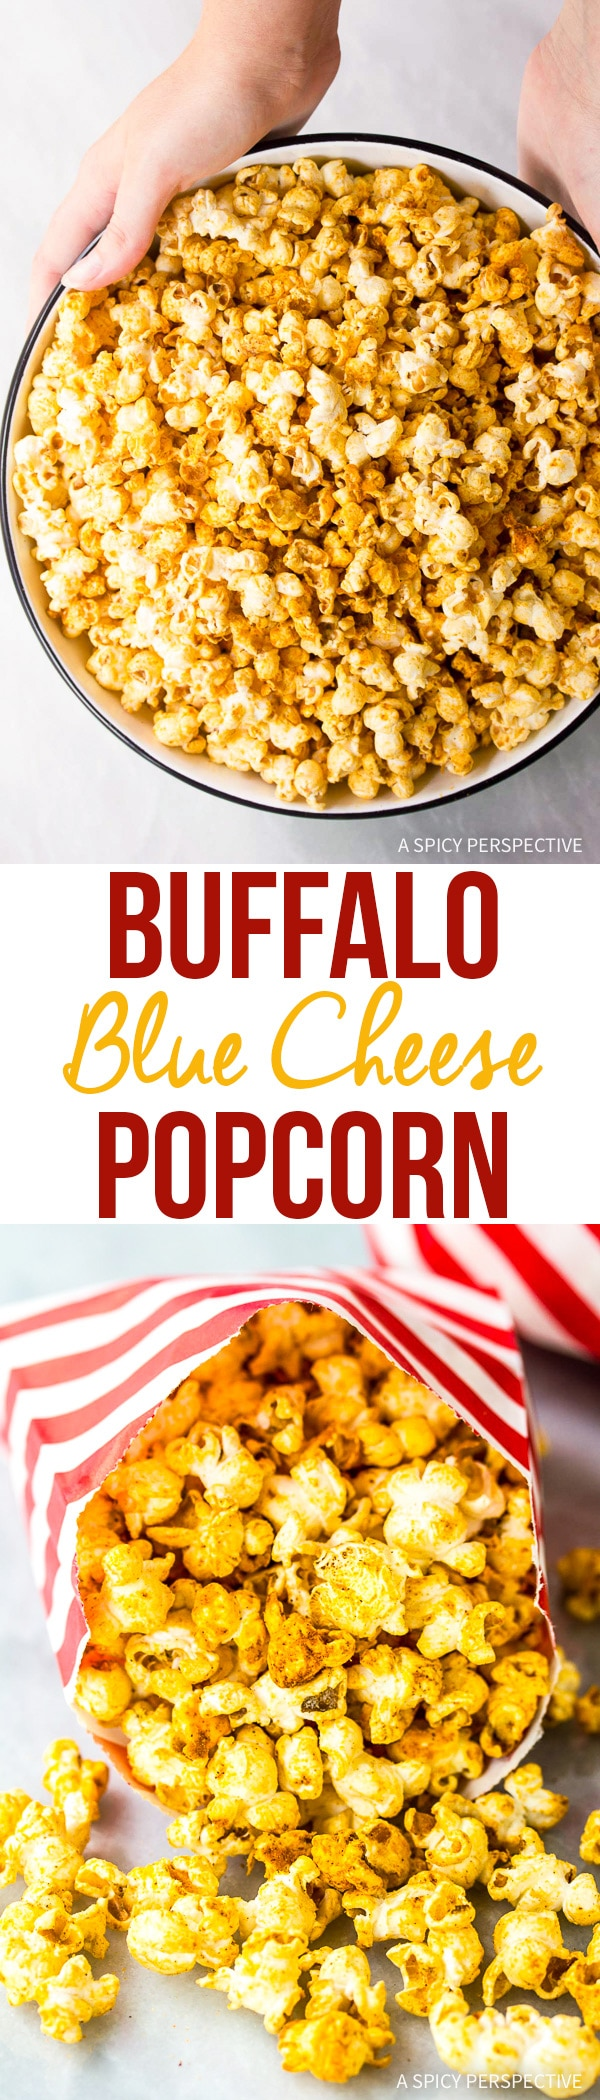 Zesty Buffalo Blue Cheese Popcorn Recipe